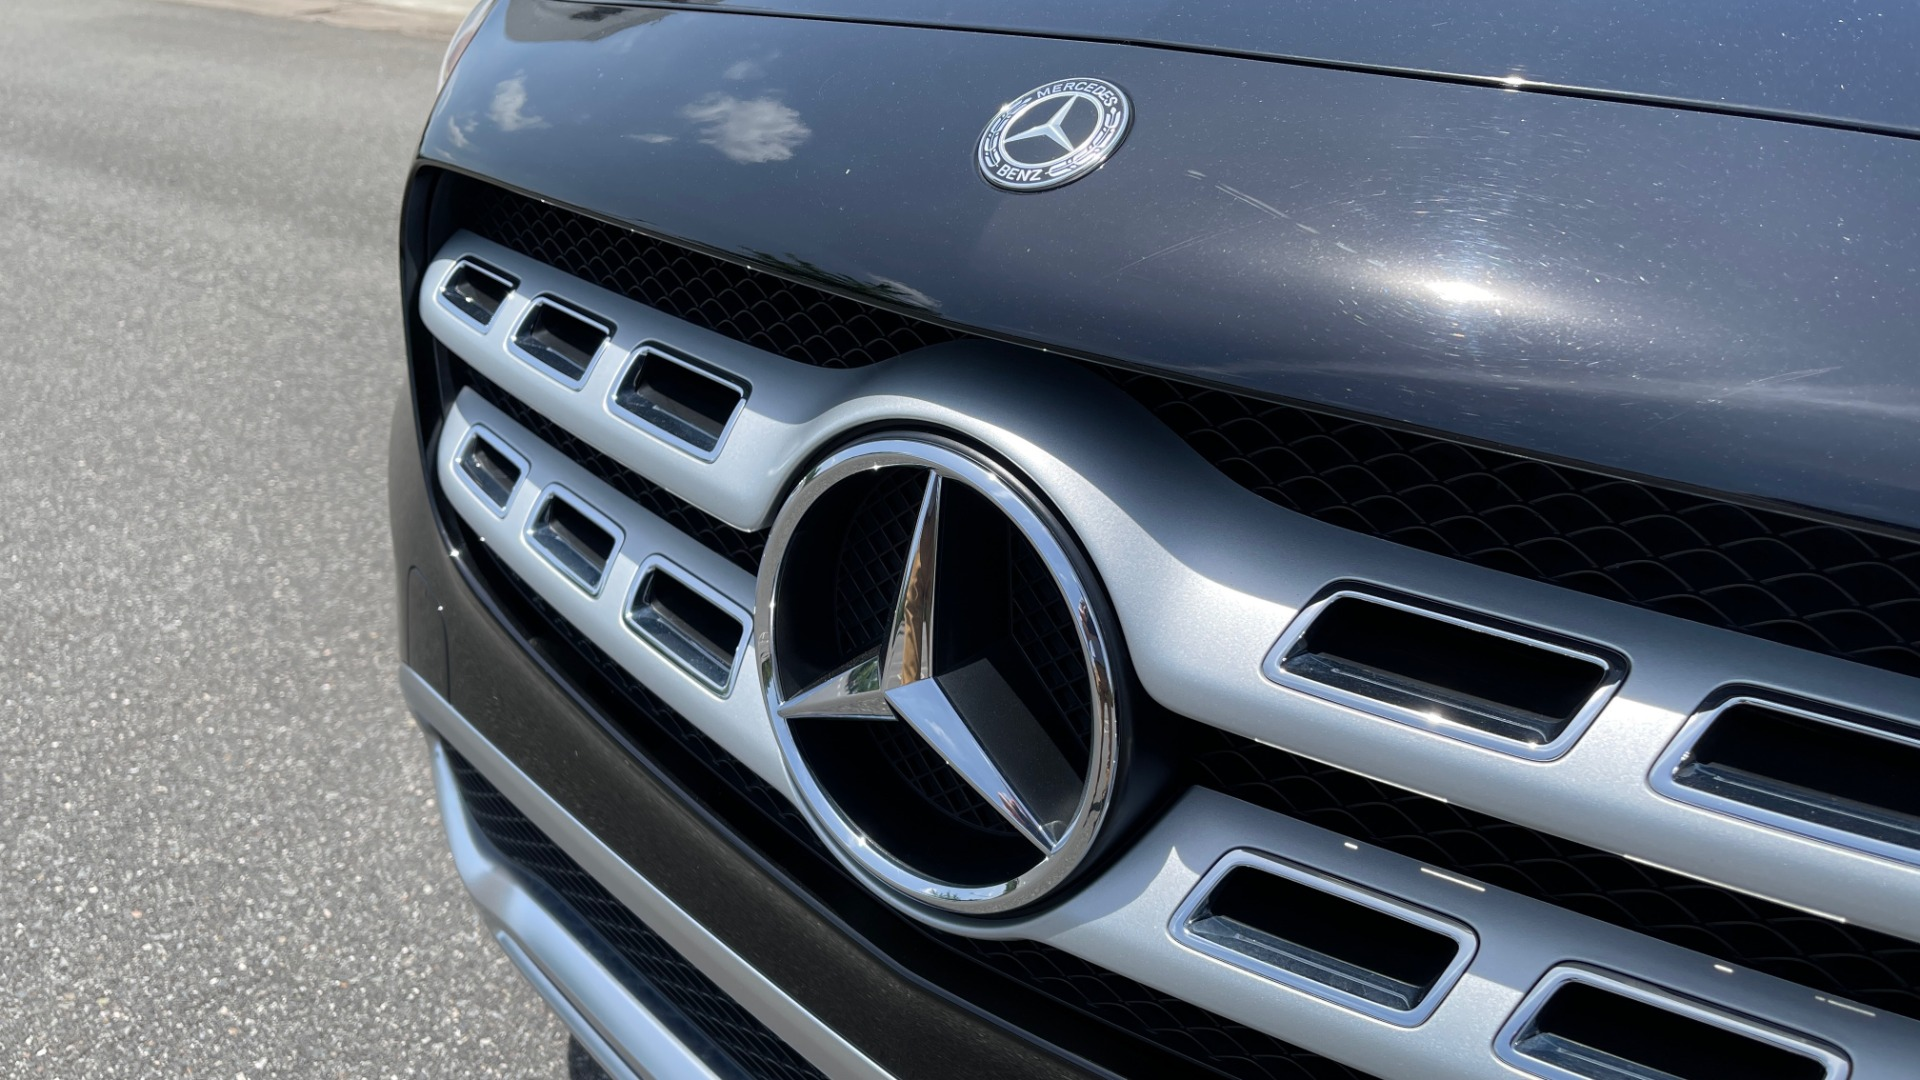 Used 2018 Mercedes-Benz GLA 250 4MATIC SUV / PANO-ROOF / HTD STS / BLIND SPOT ASST / APPLE for sale $31,995 at Formula Imports in Charlotte NC 28227 13